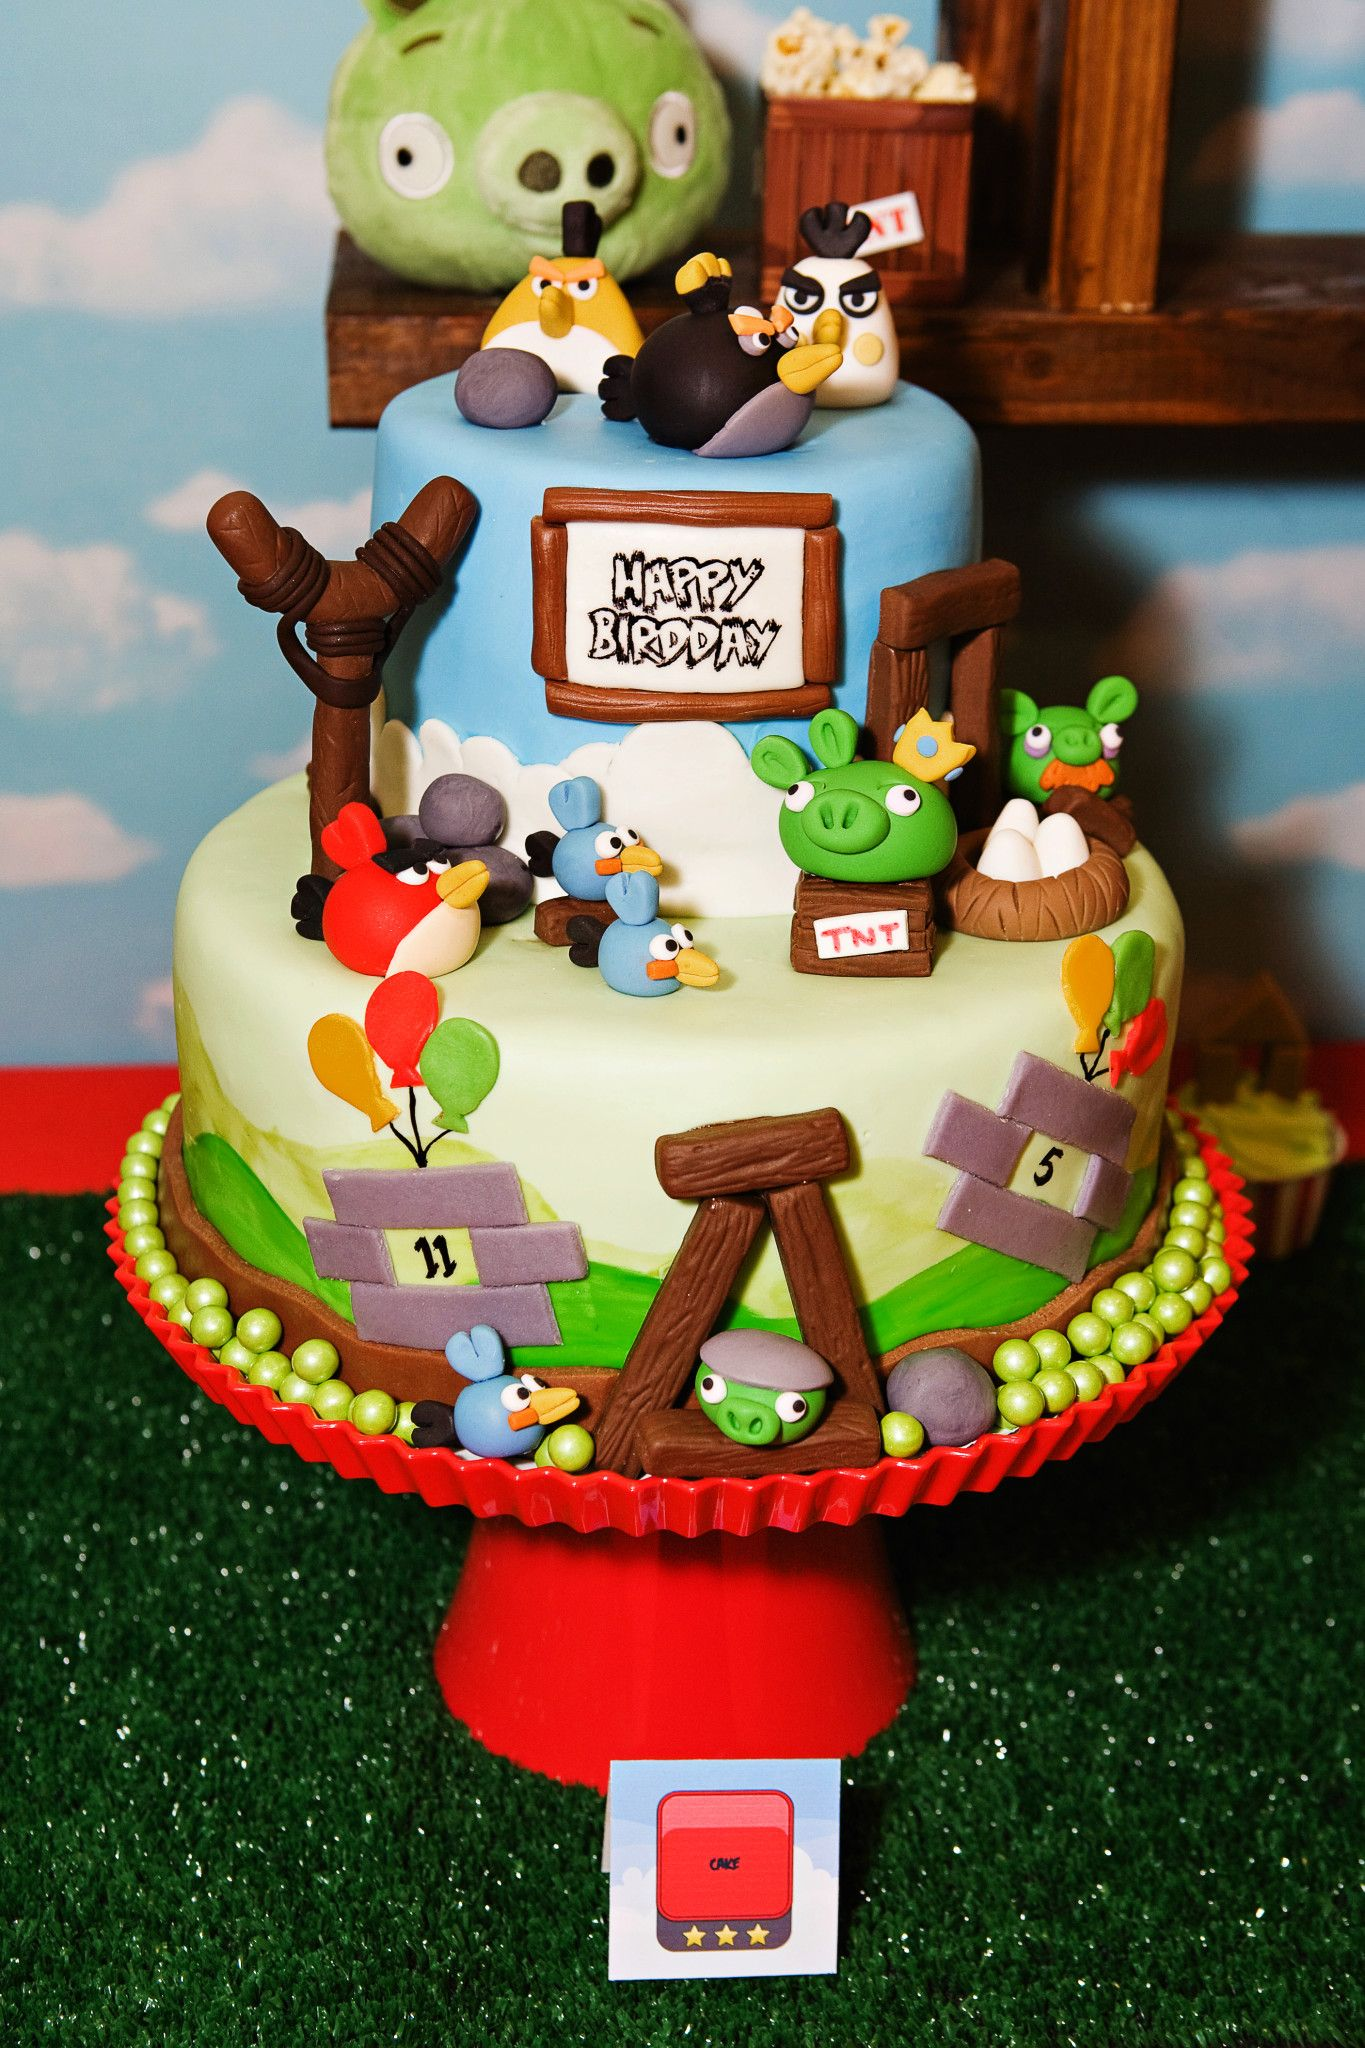 Kids party ideas angry birds party video game parties parties kids party ideas angry birds party video game parties solutioingenieria Images